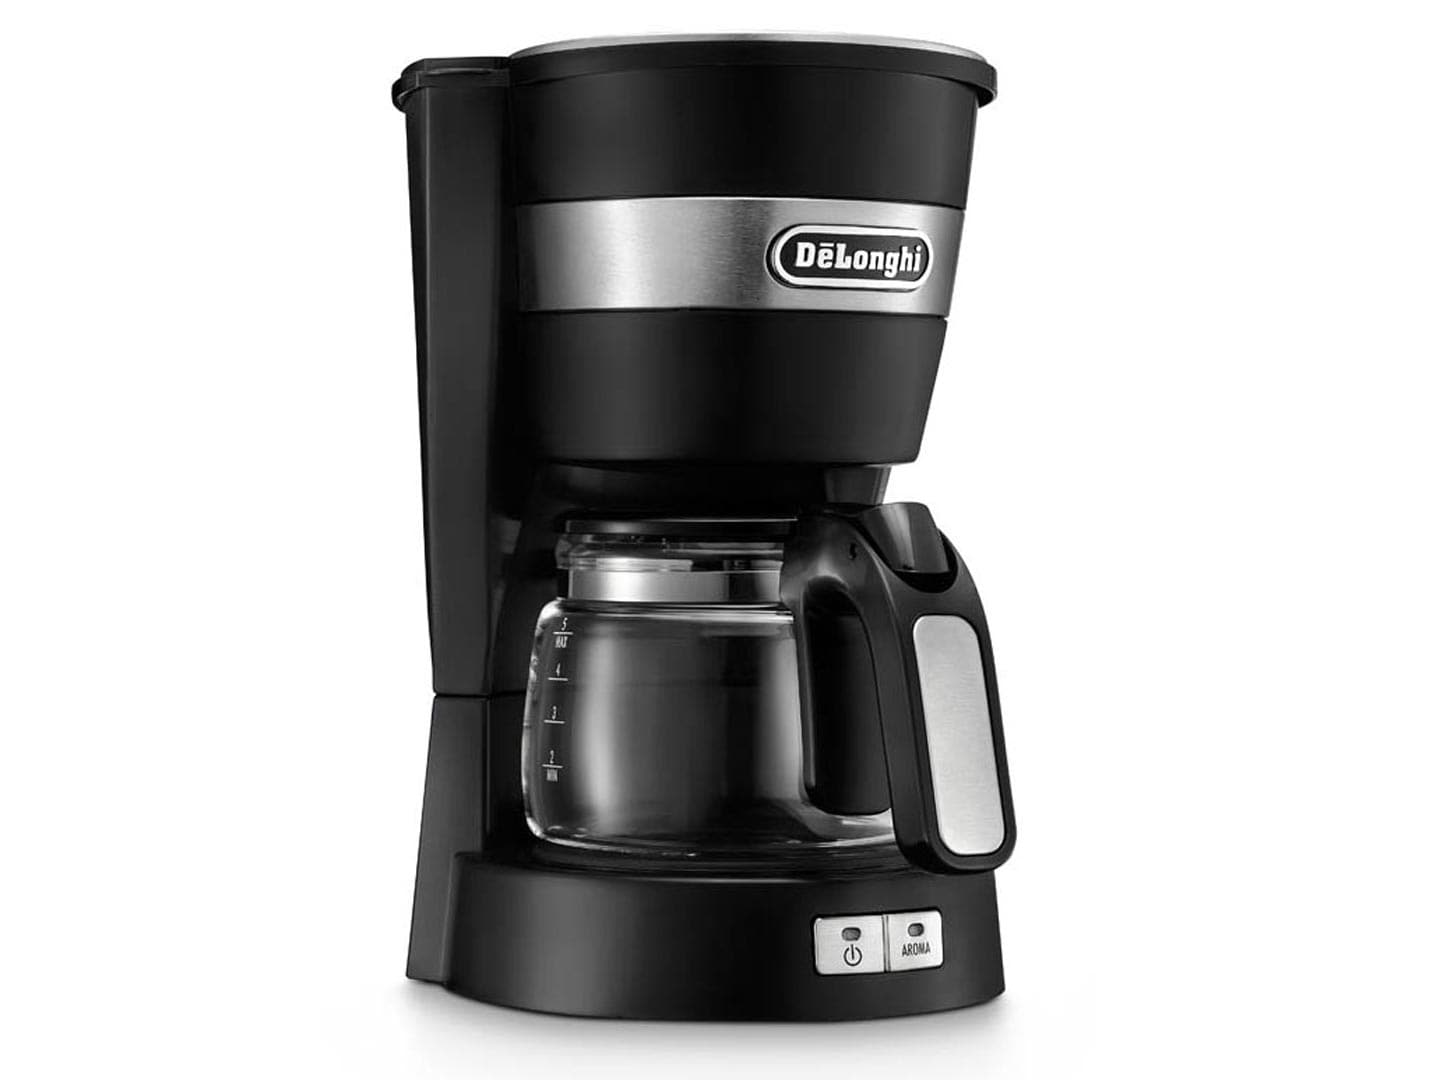 Delonghi drip coffee maker instructions